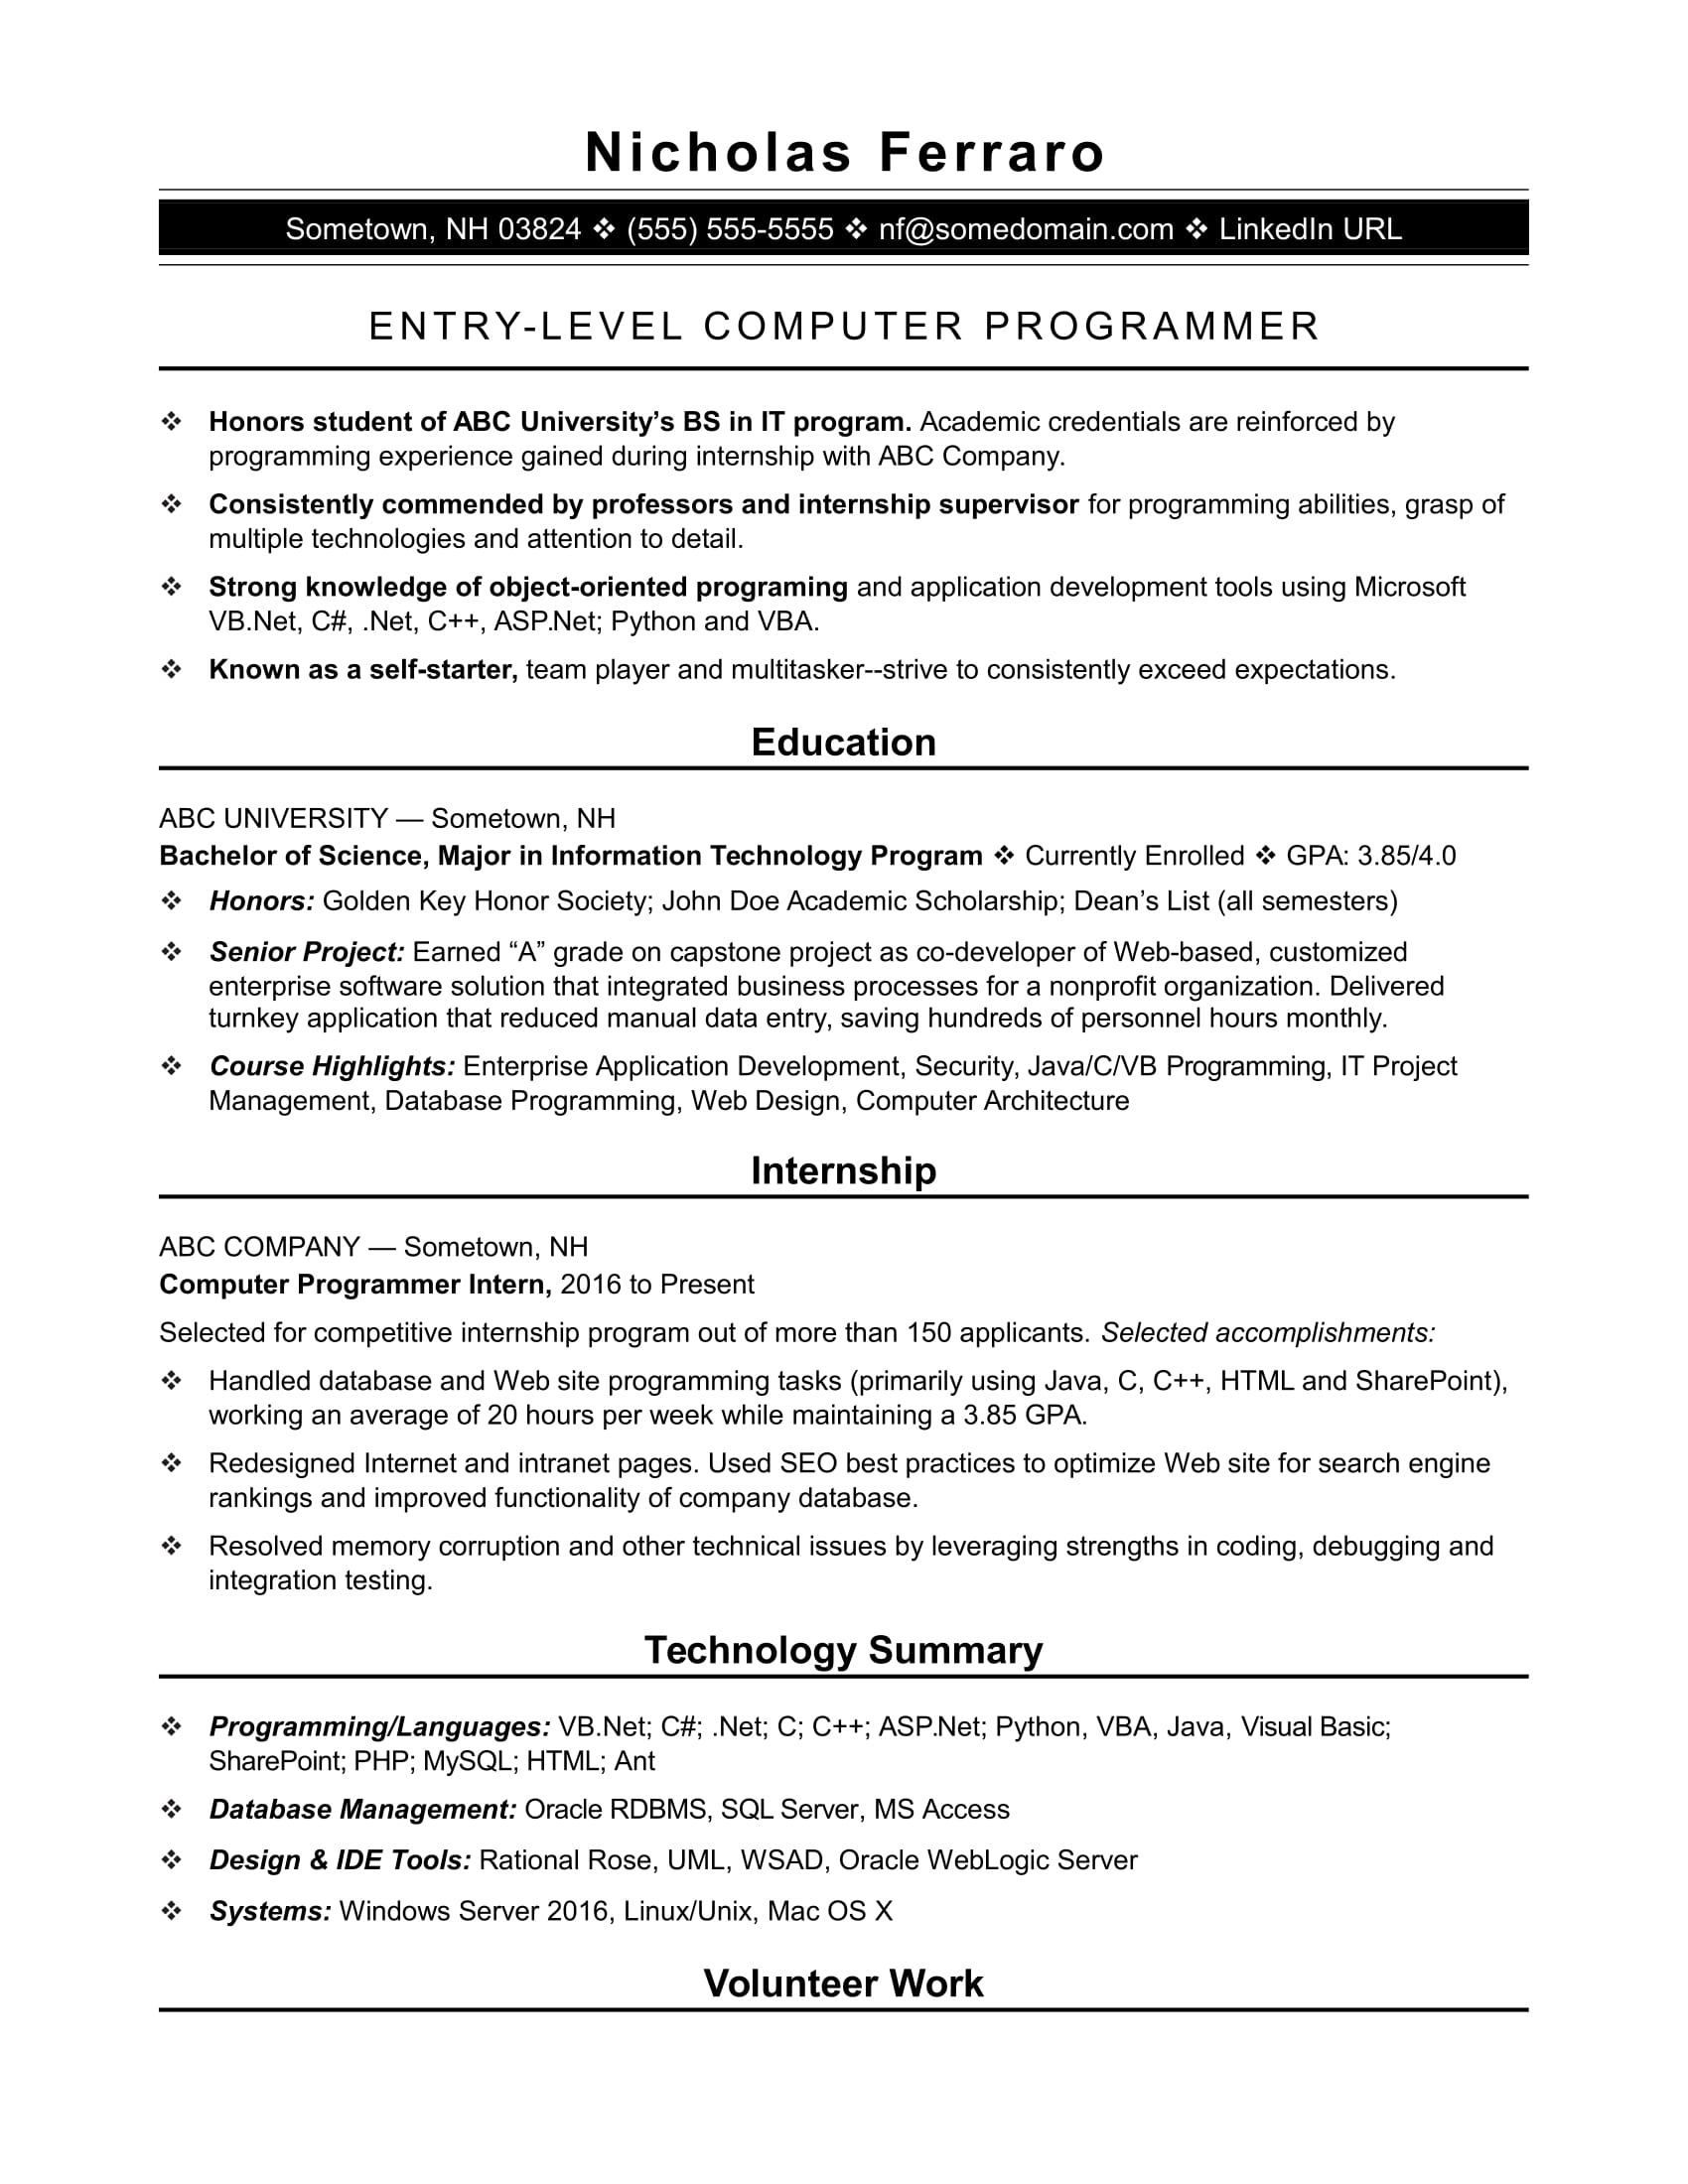 EntryLevel Resume Objective Examples  Monstercom